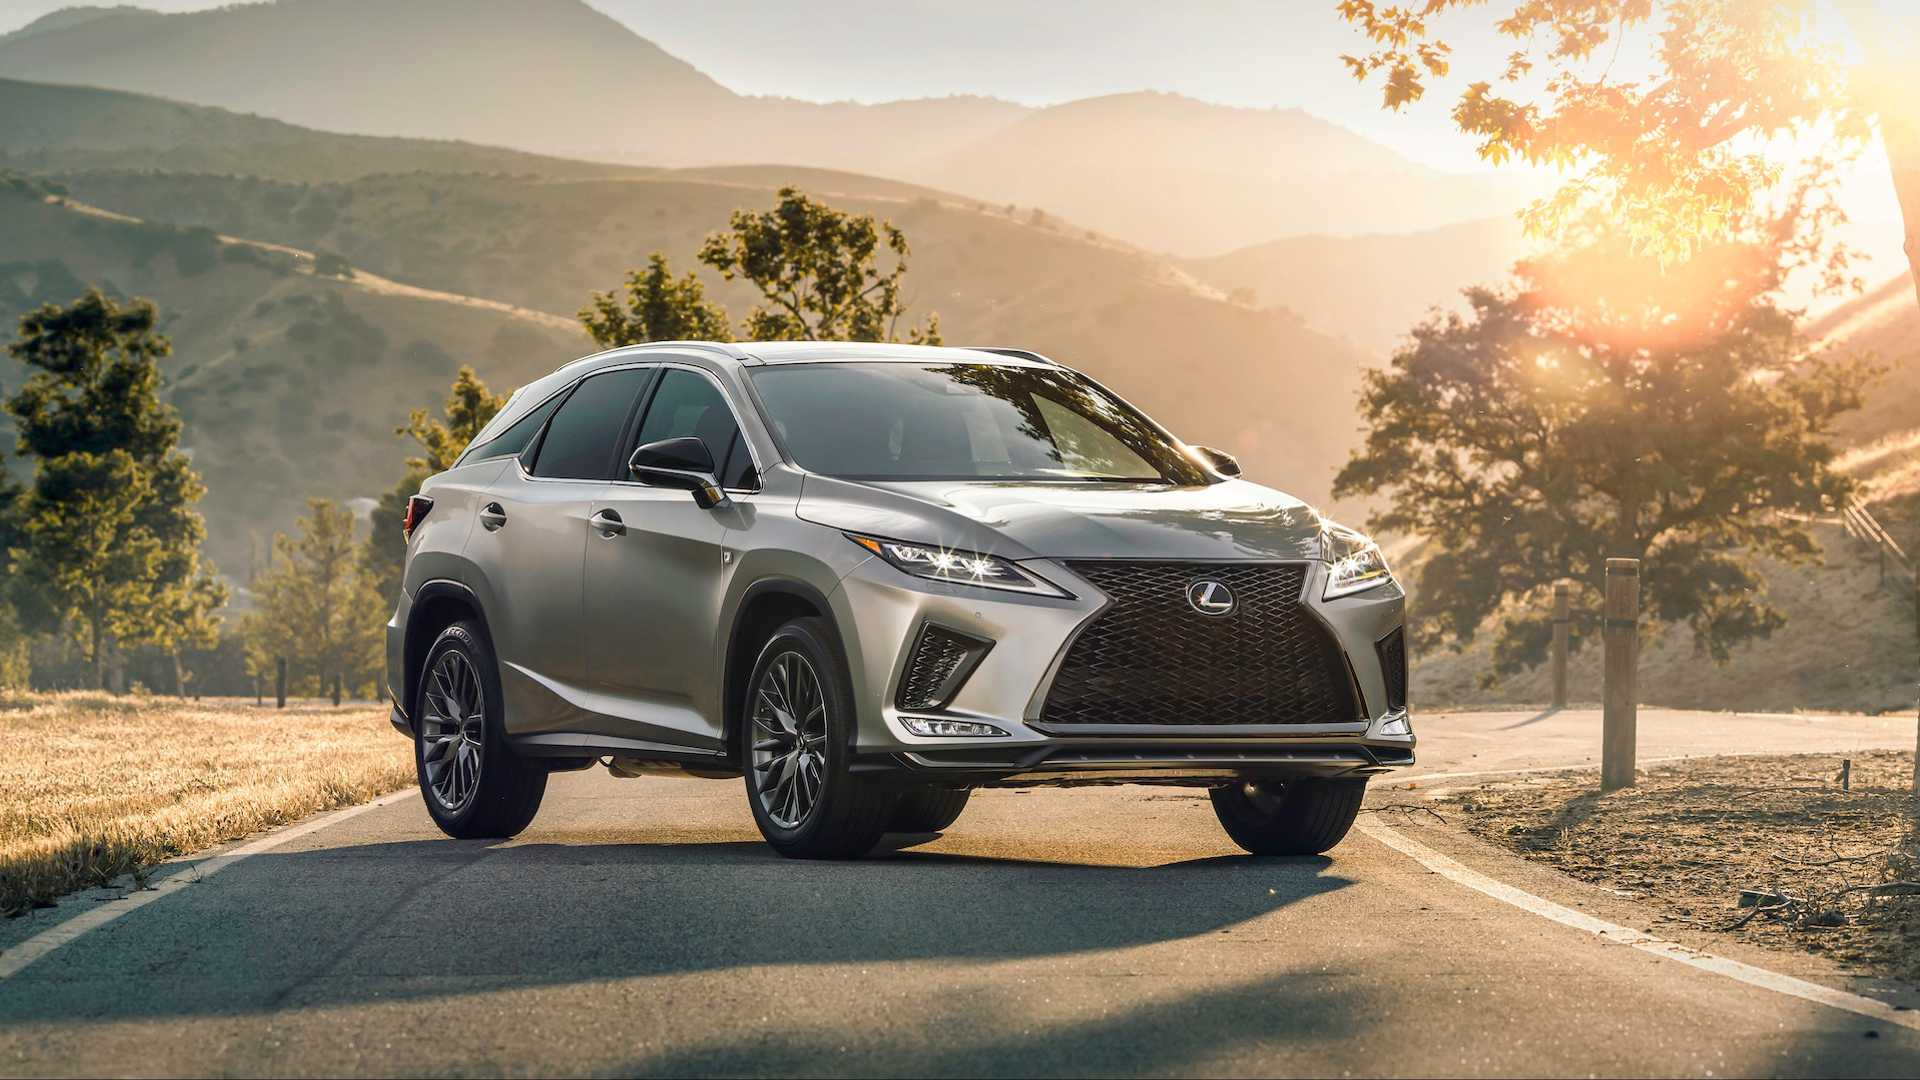 74 All New Lexus Rx Facelift 2019 Overview